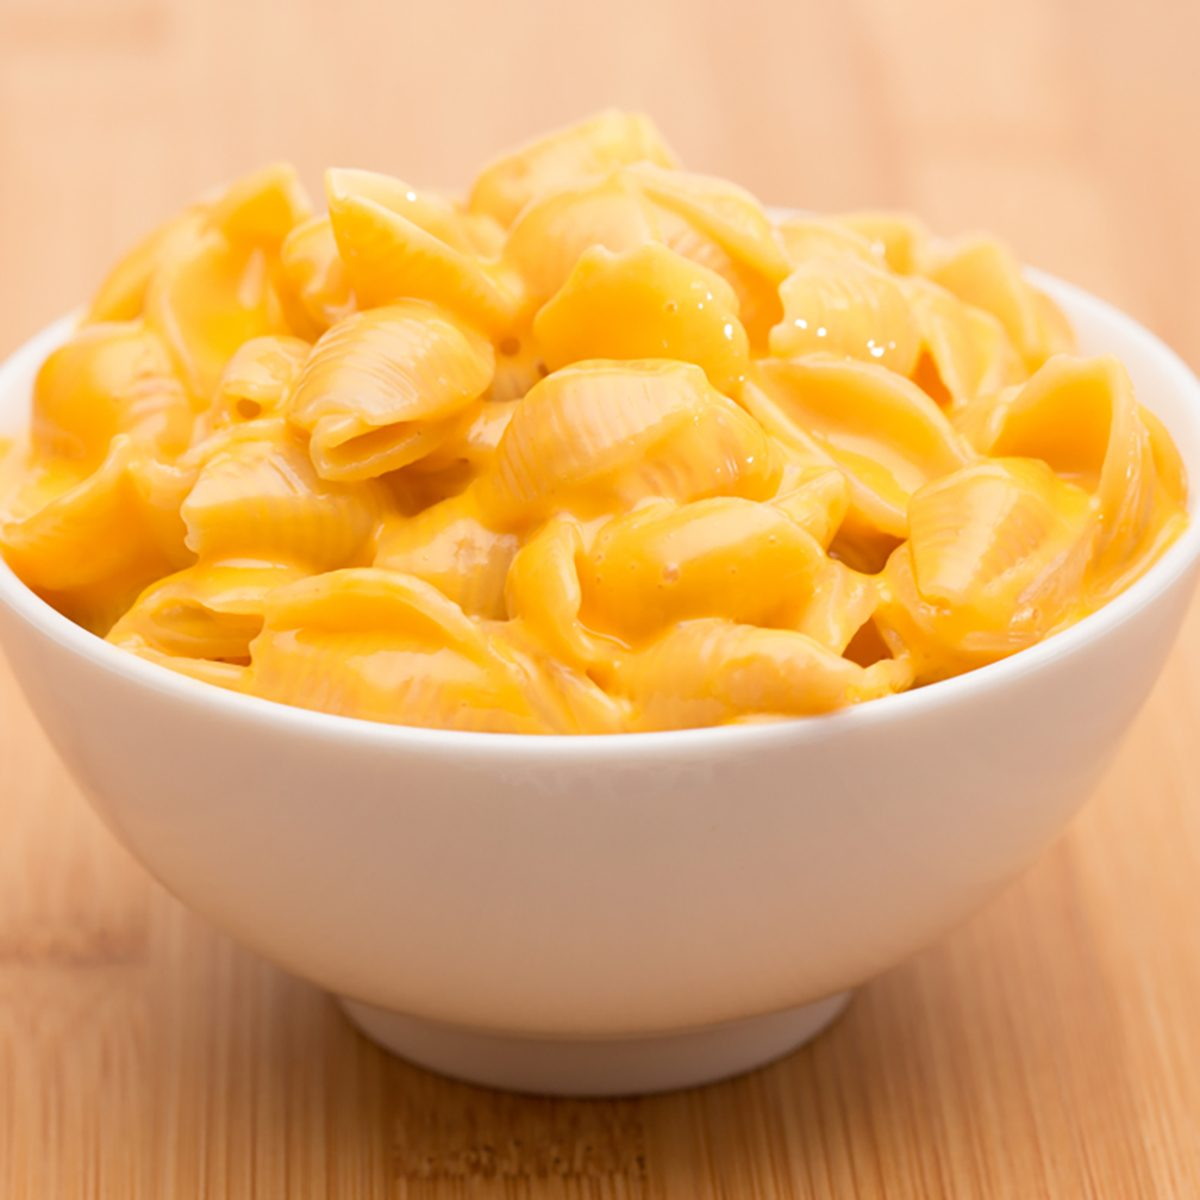 Macaroni Shells and Cheese on a Wooden Table